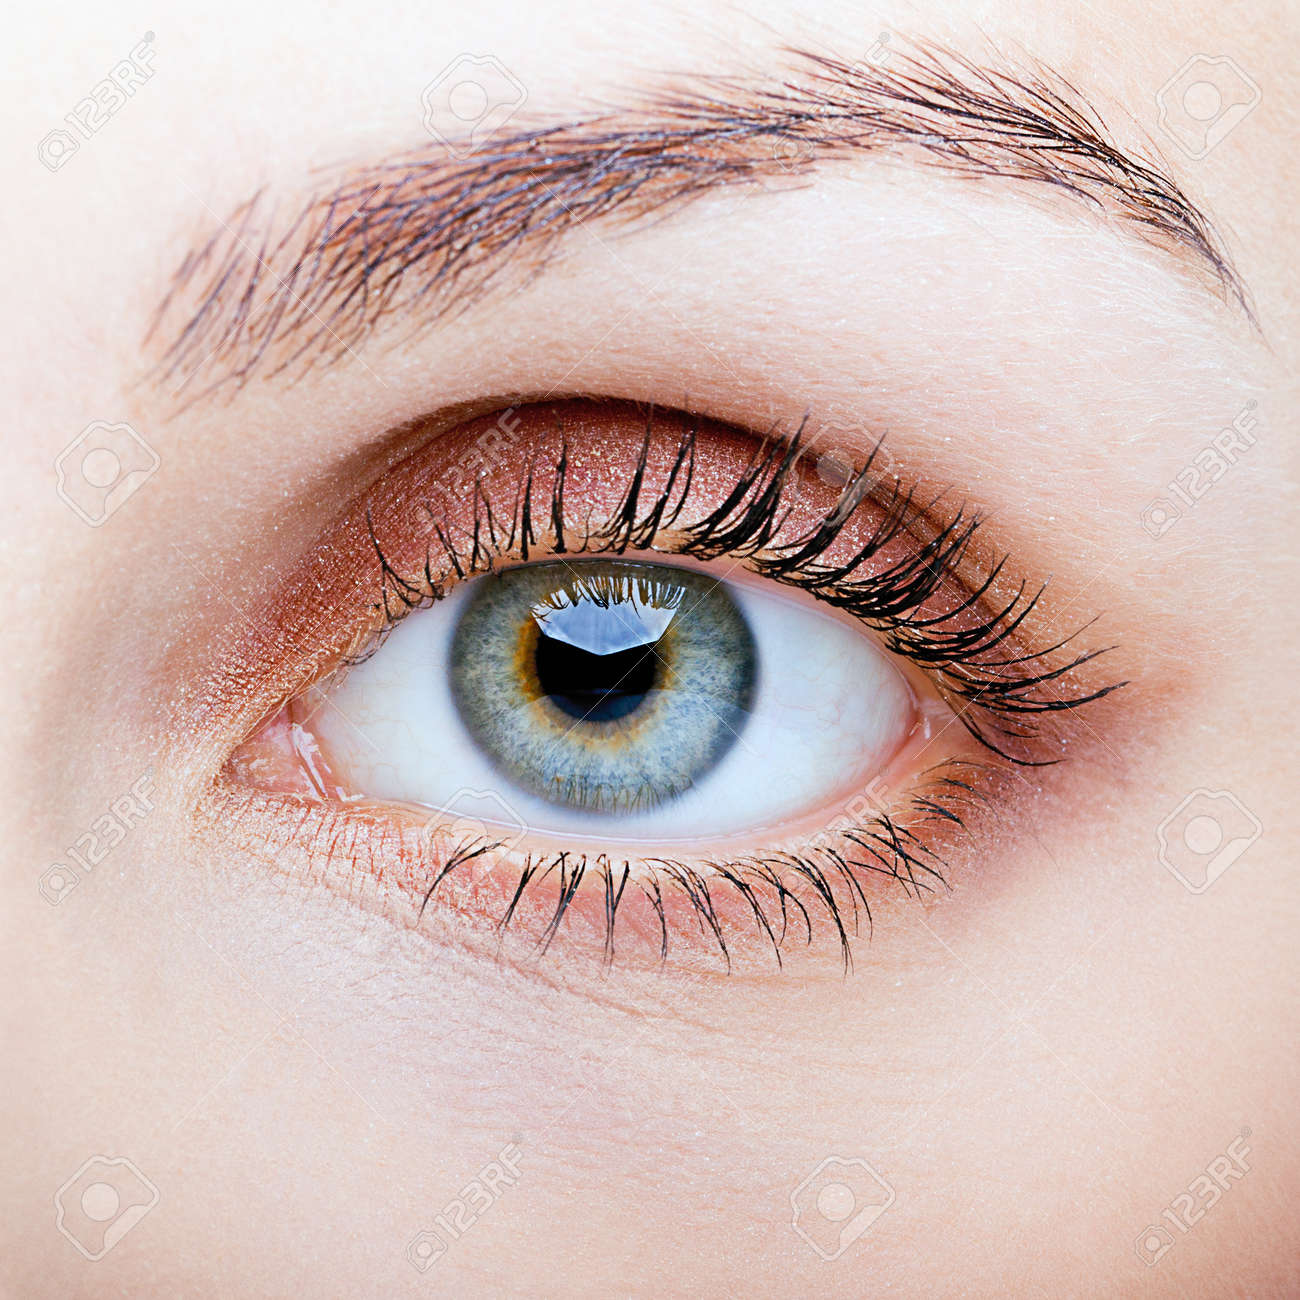 Close-up shot of female face with eye makeup - 43143438